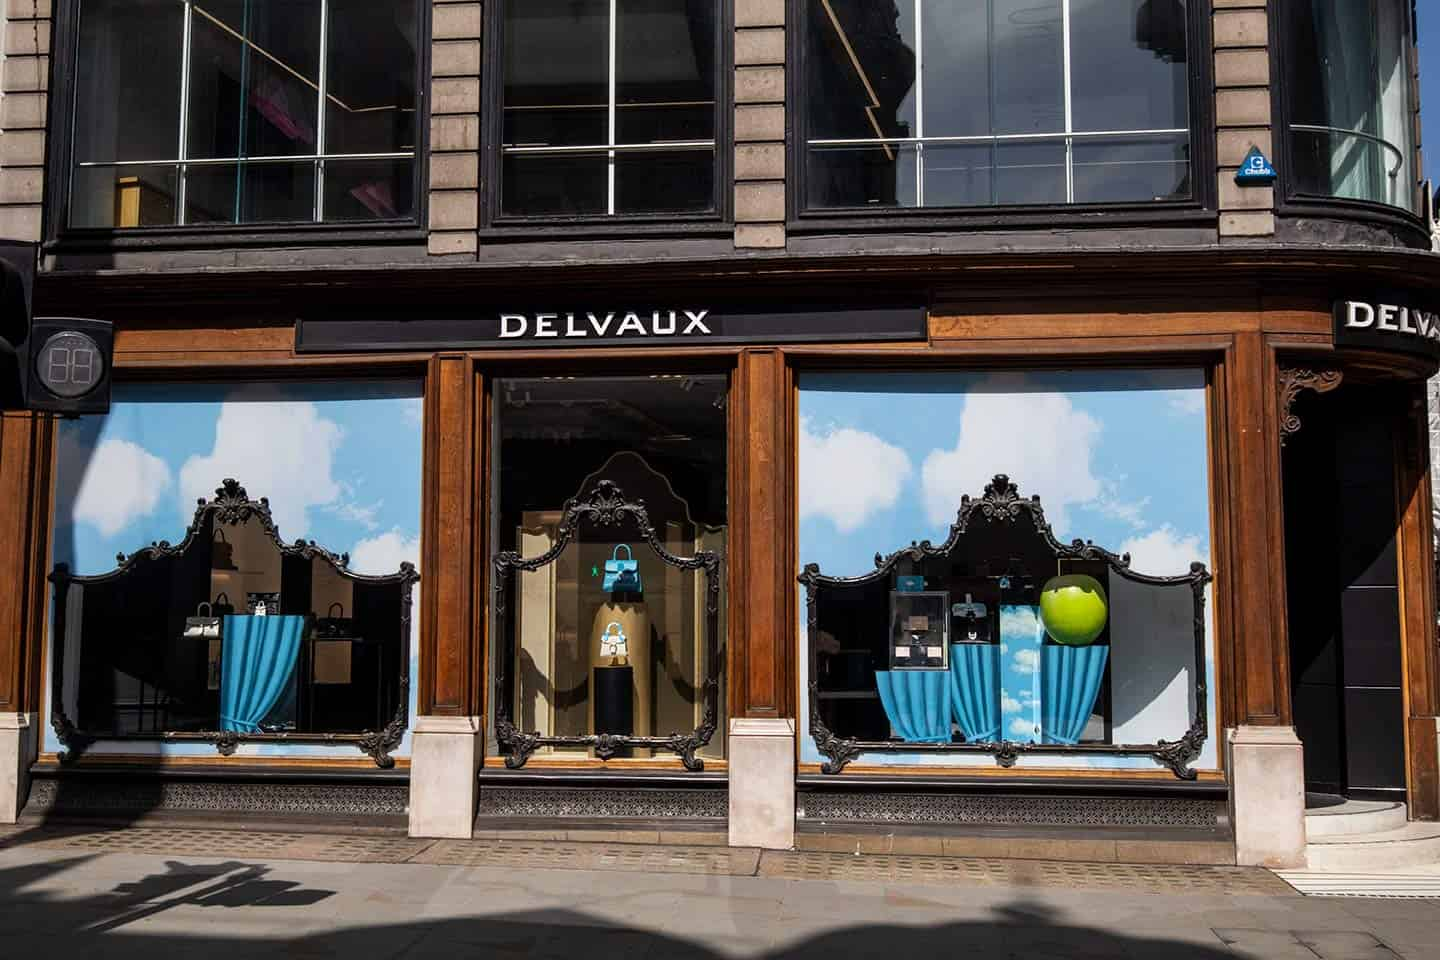 Image of the Delvaux luxury leather goods store on New Bond Street, London